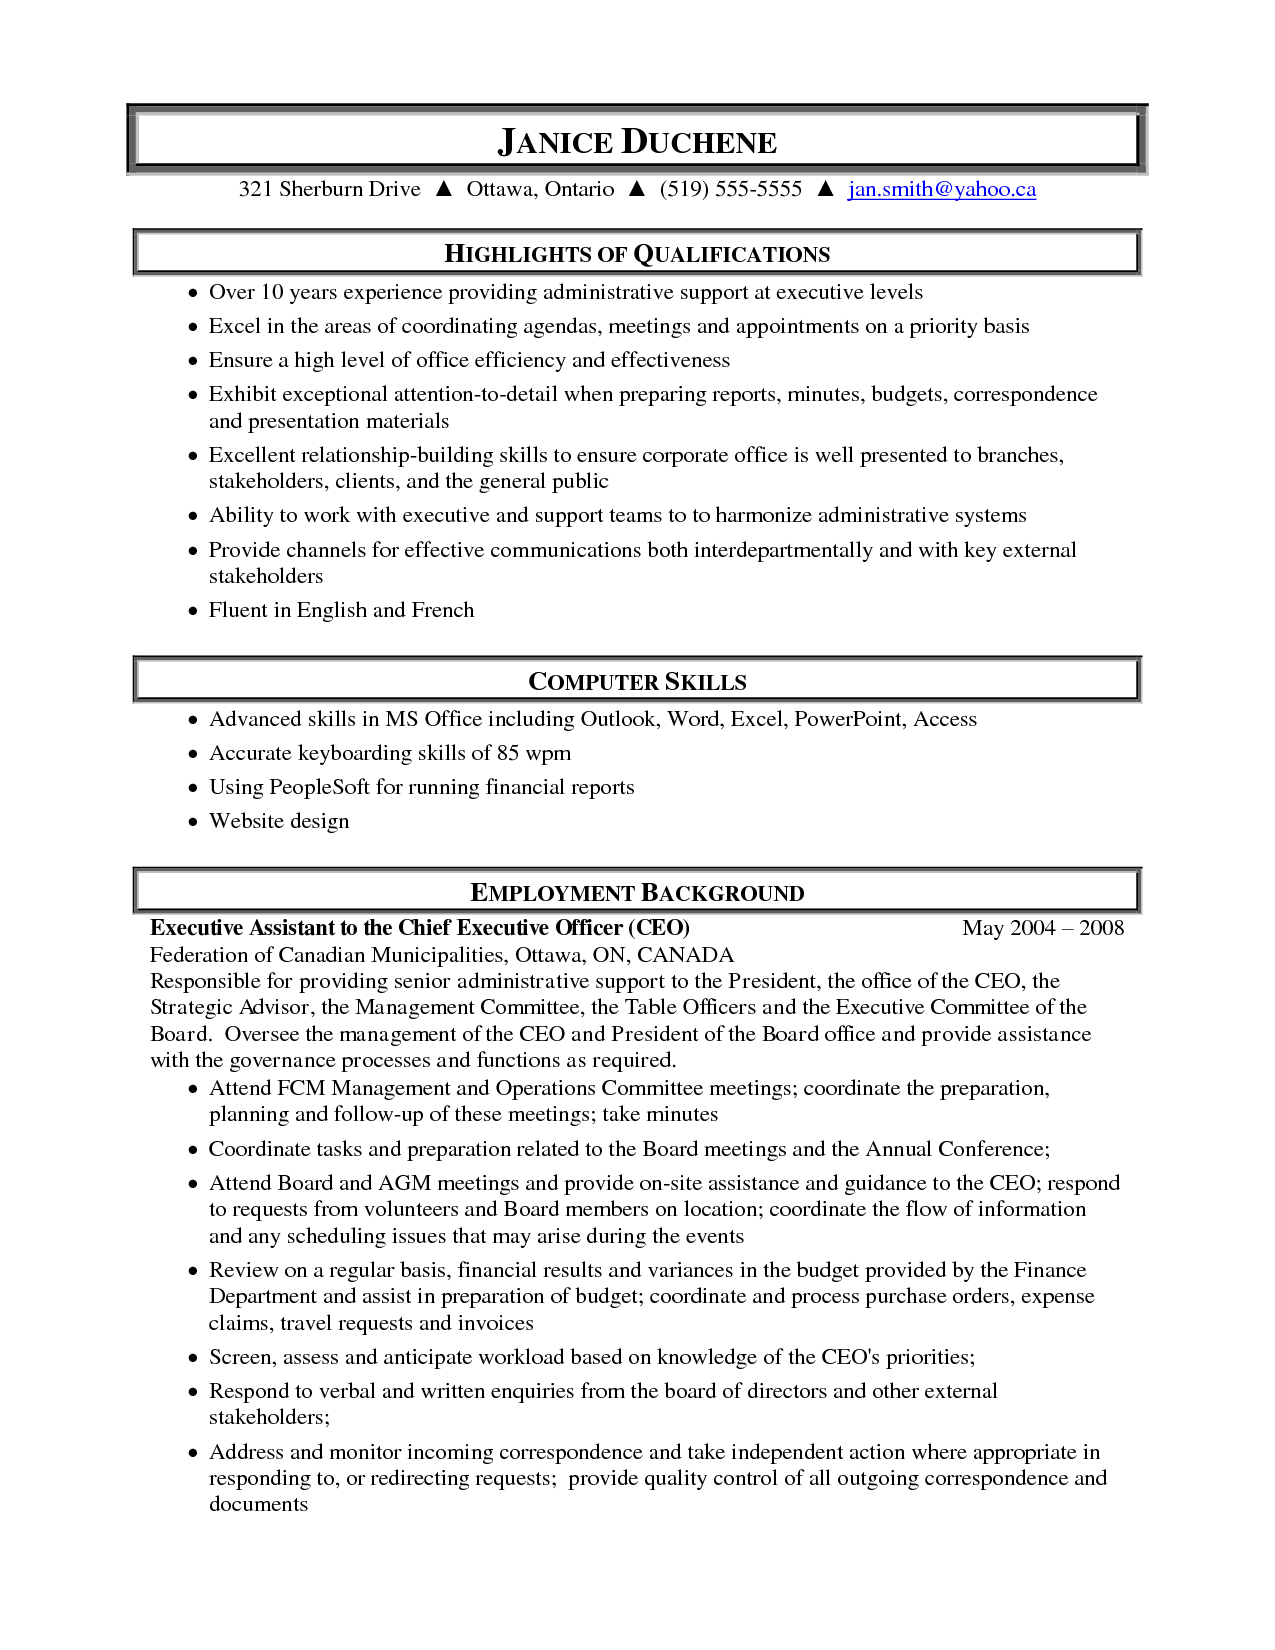 sample resume for administrative assistant skills - Kubre.euforic.co